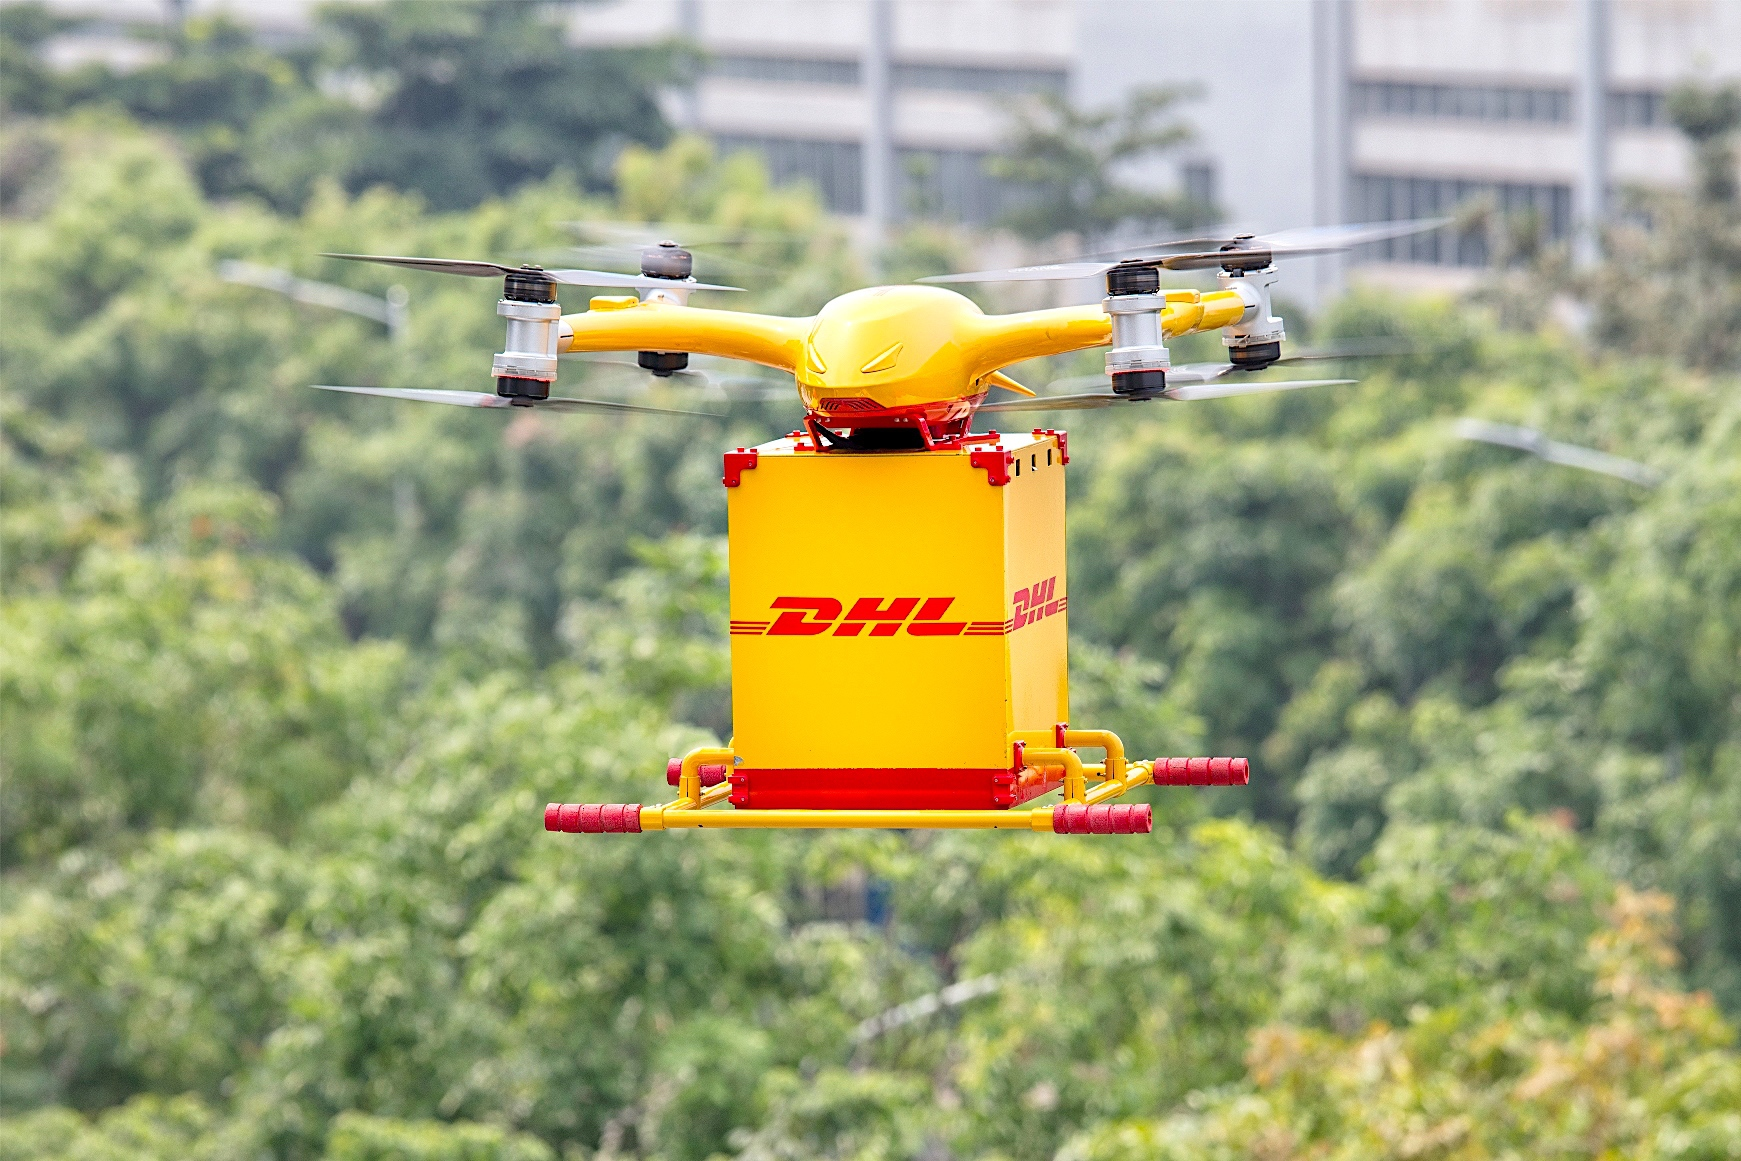 DHL Express, EHang launch first urban drone service